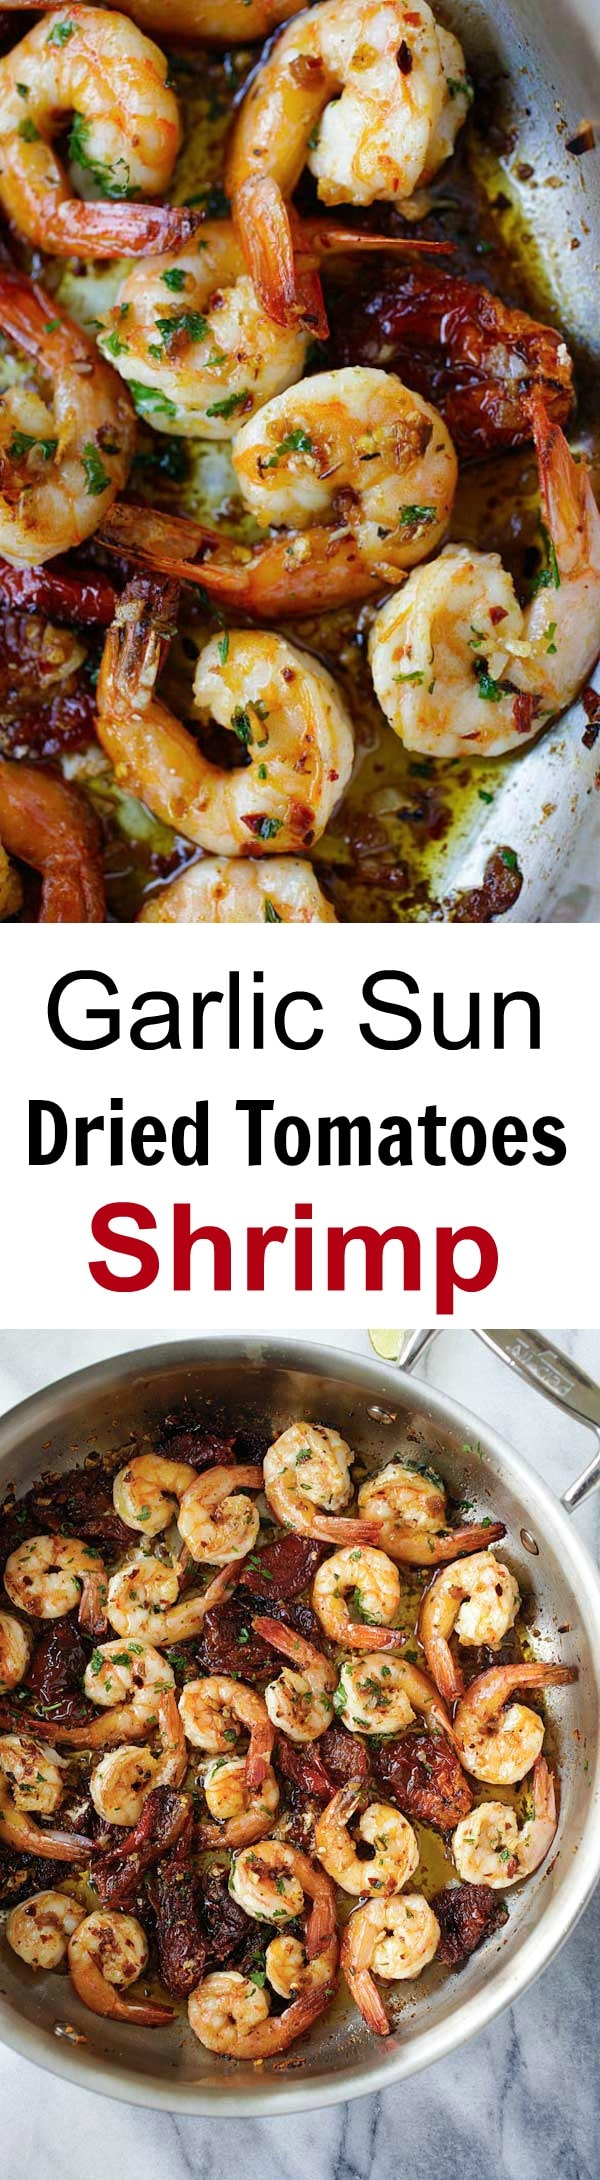 Garlic Sun-Dried Tomatoes Roasted Shrimp - Best garlic roasted shrimp ...